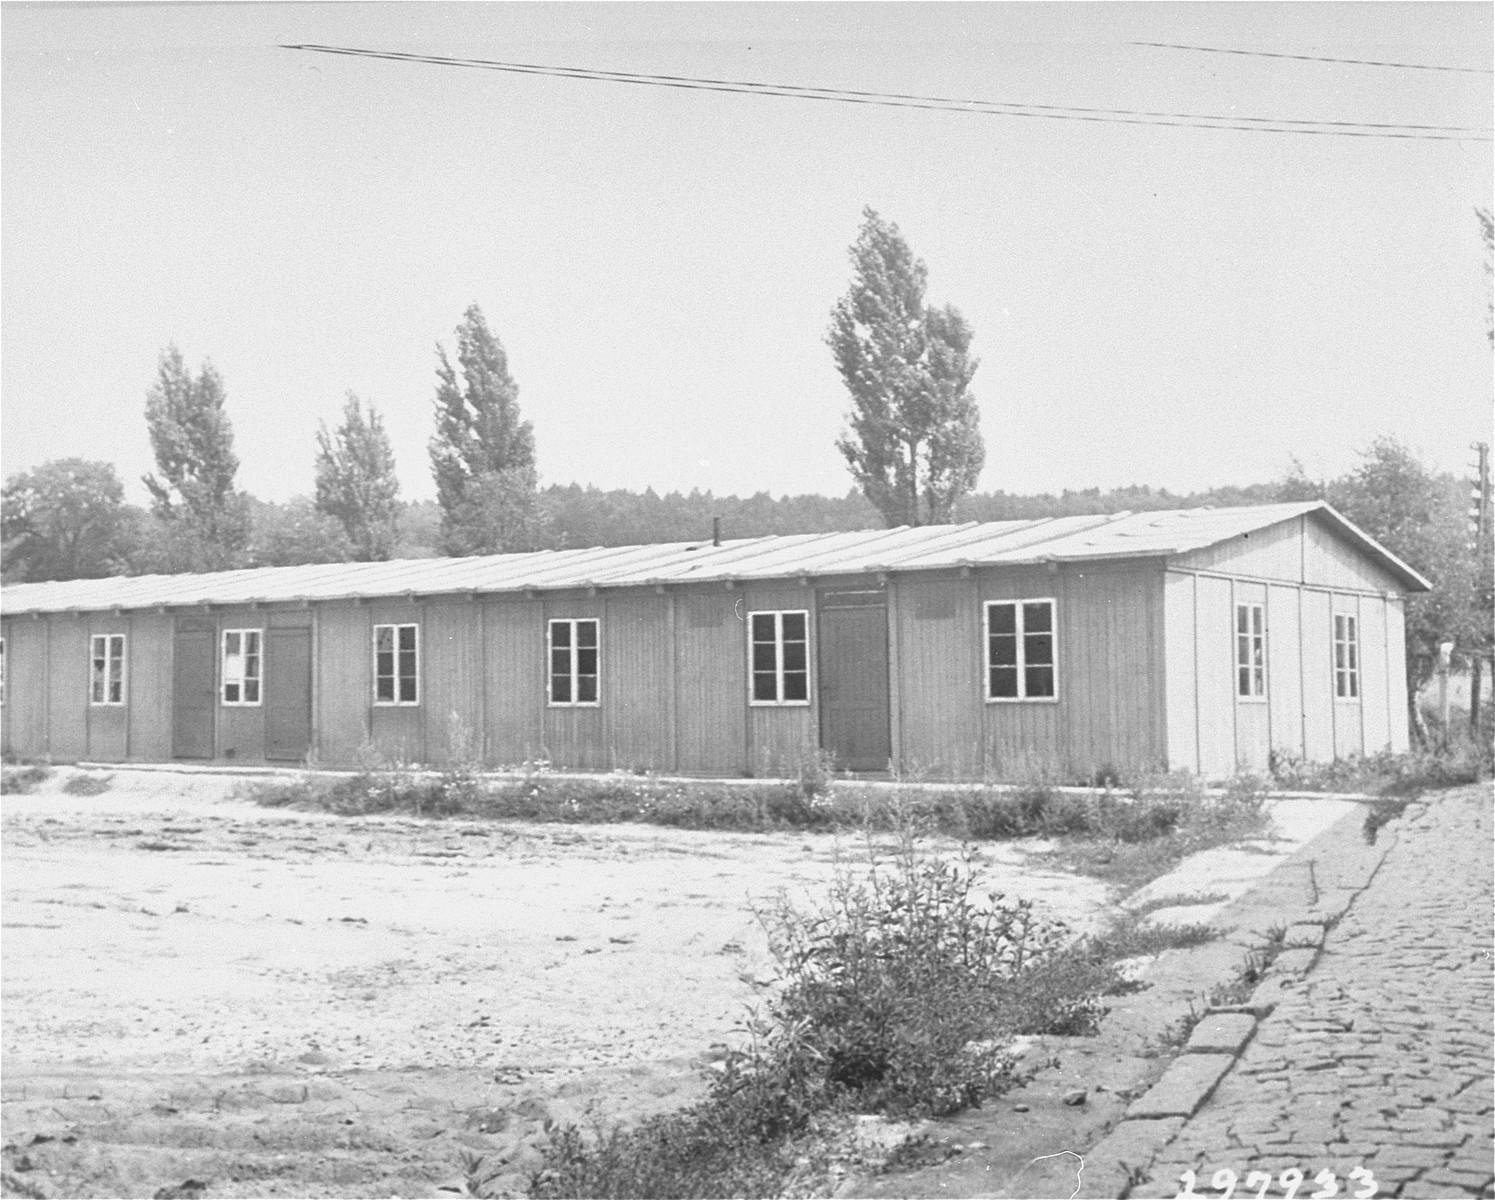 Exterior view of a school building in the Ebelsberg displaced persons' camp which had formerly been a recreation center for American personnel.